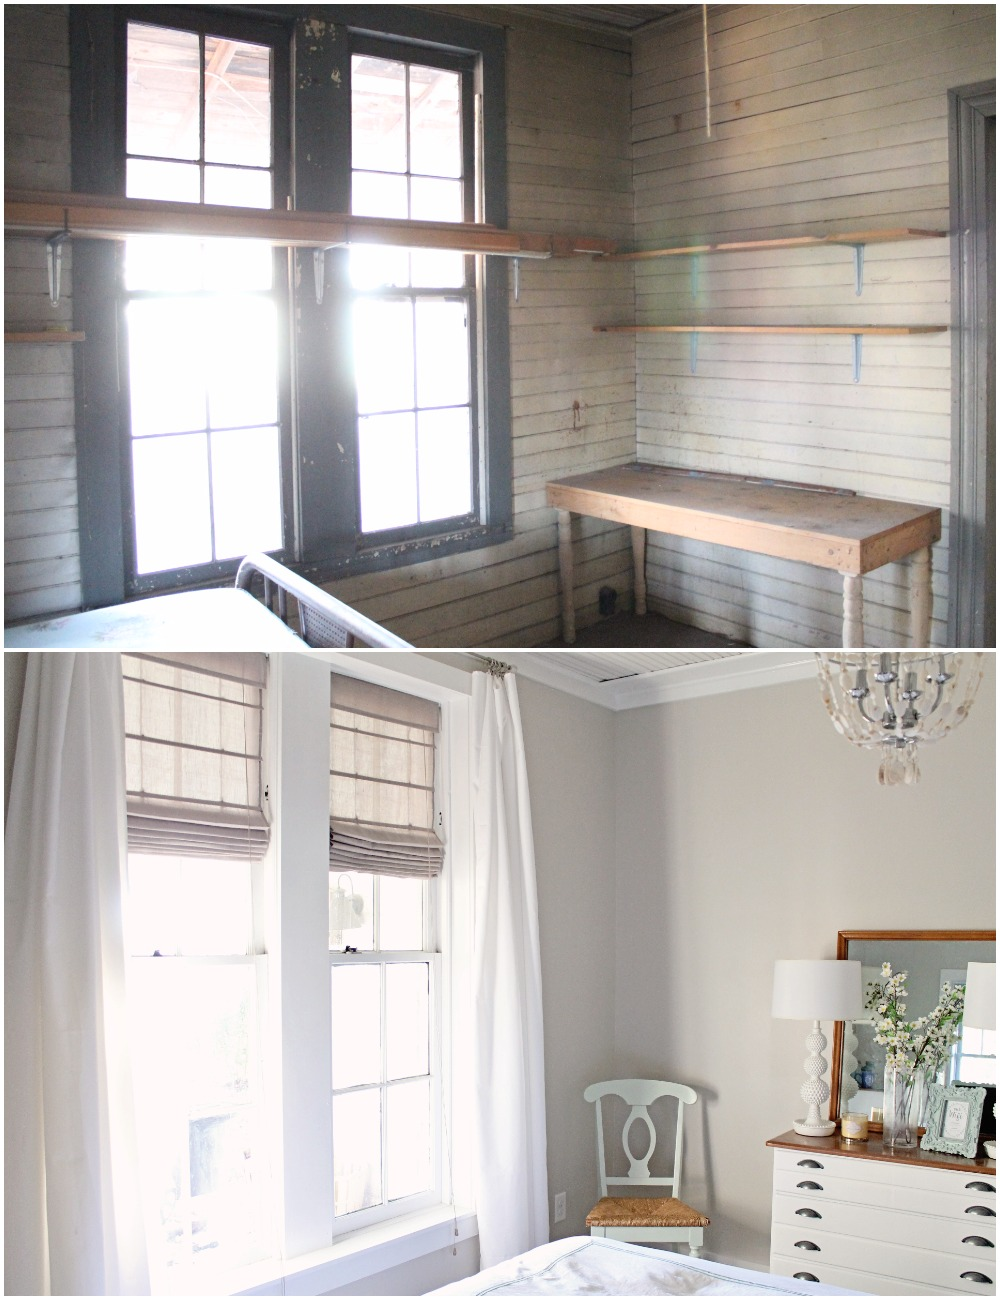 Elizabeth Burns Design  Budget-Friendly Fixer Upper Farmhouse Before and After House Flip - DIY Guest Bedroom with Aqua Accents - Sherwin Williams Agreeable Gray (2).jpg